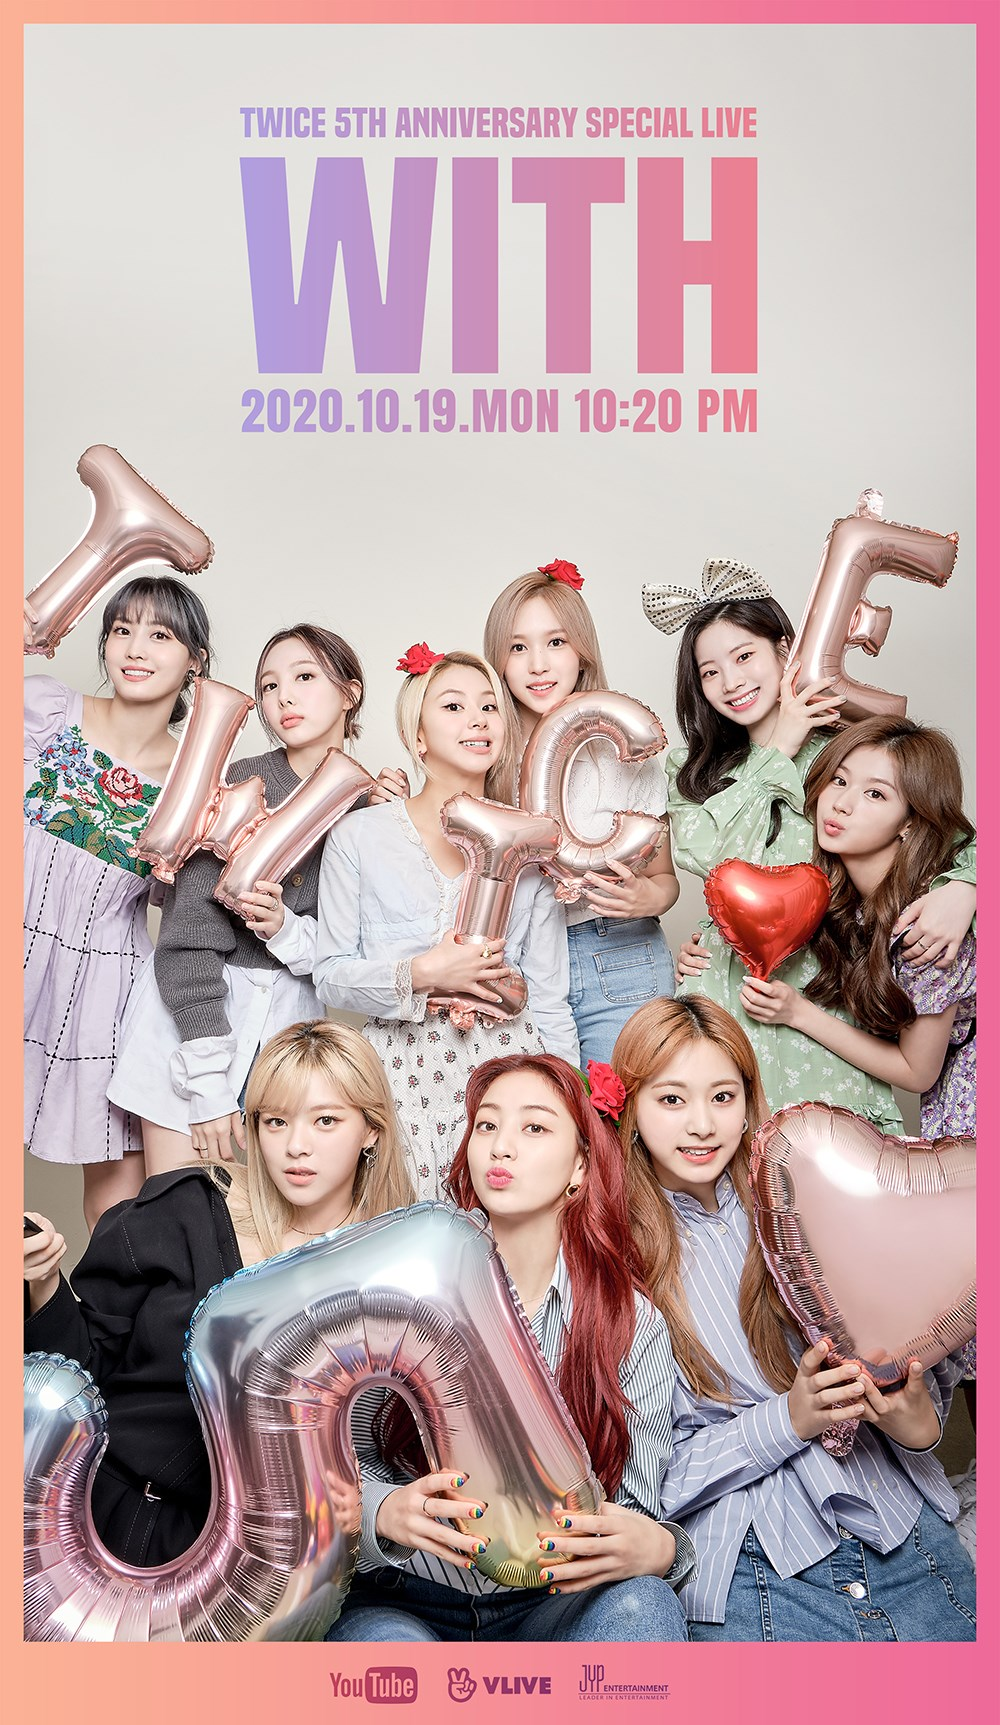 TWICE 5th Anniversary Special Live Poster.png